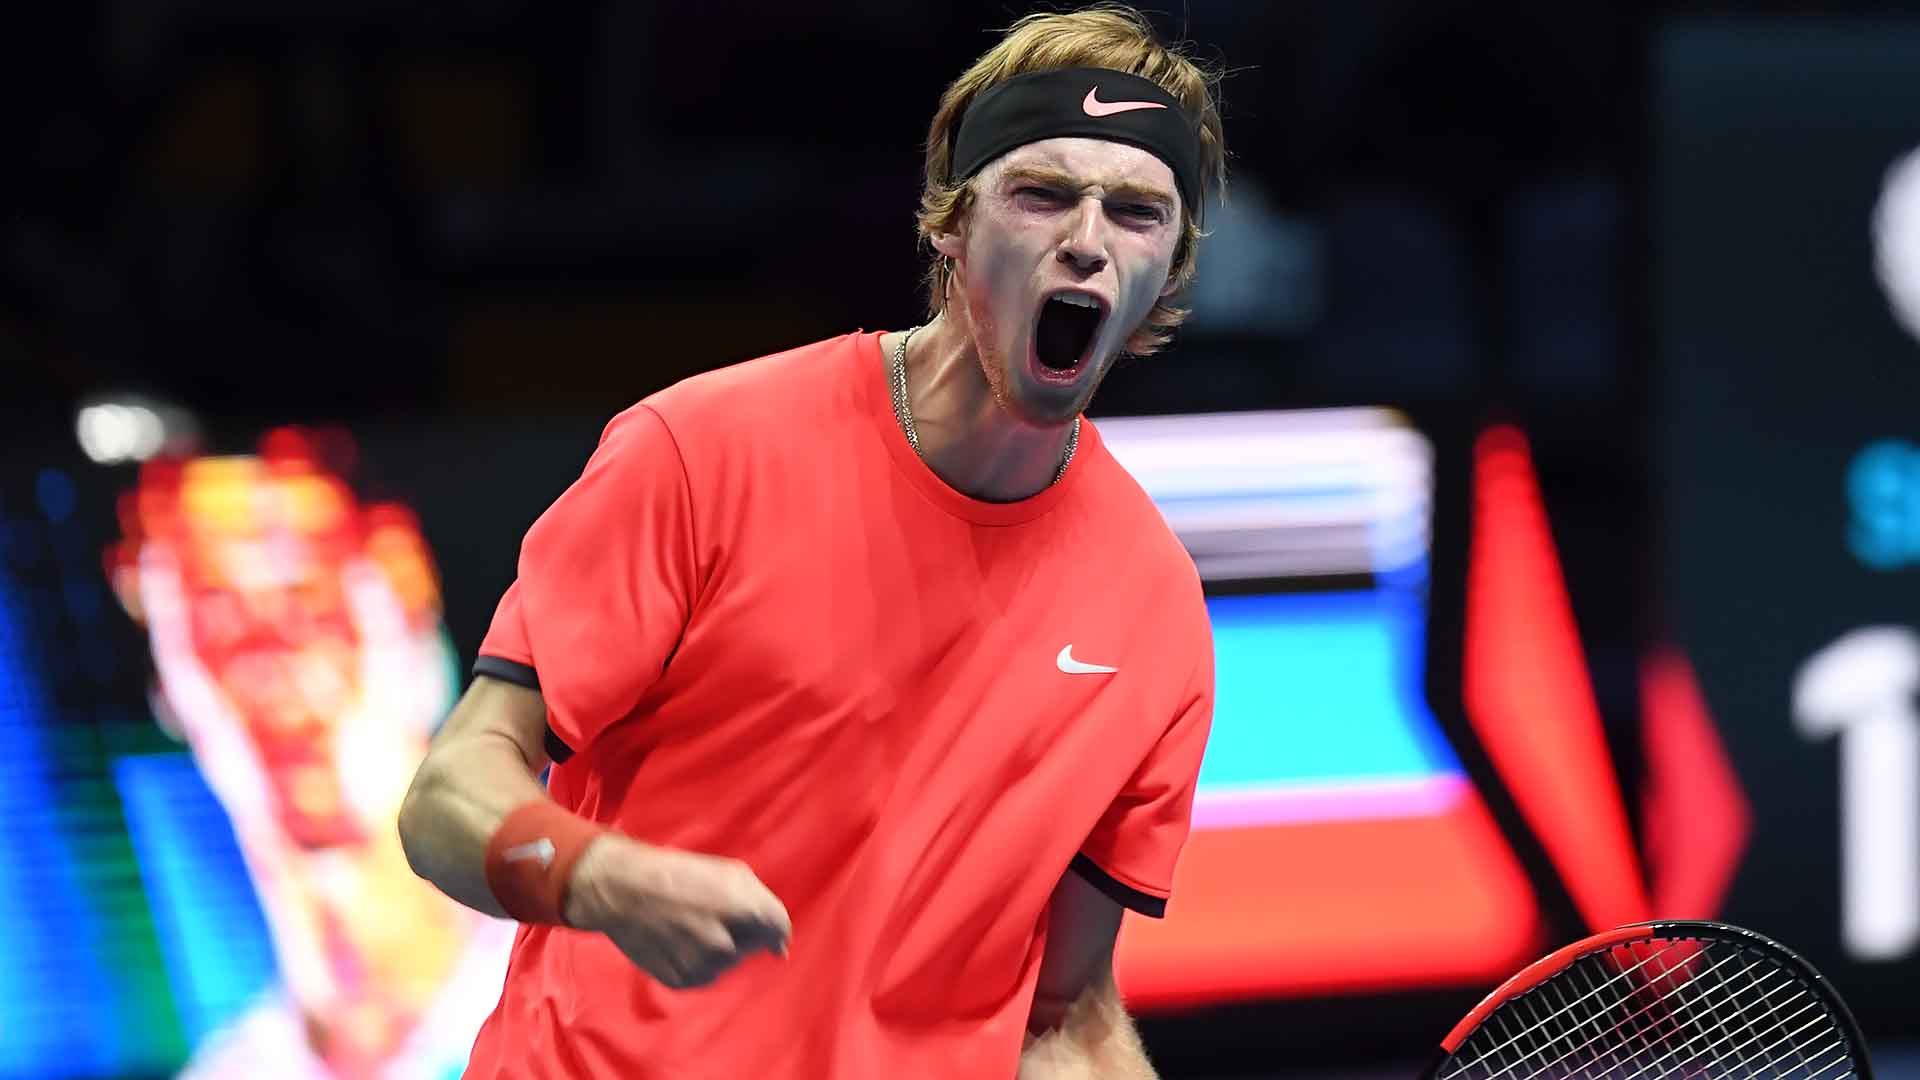 Rublev Milan 2018 Friday Celebration